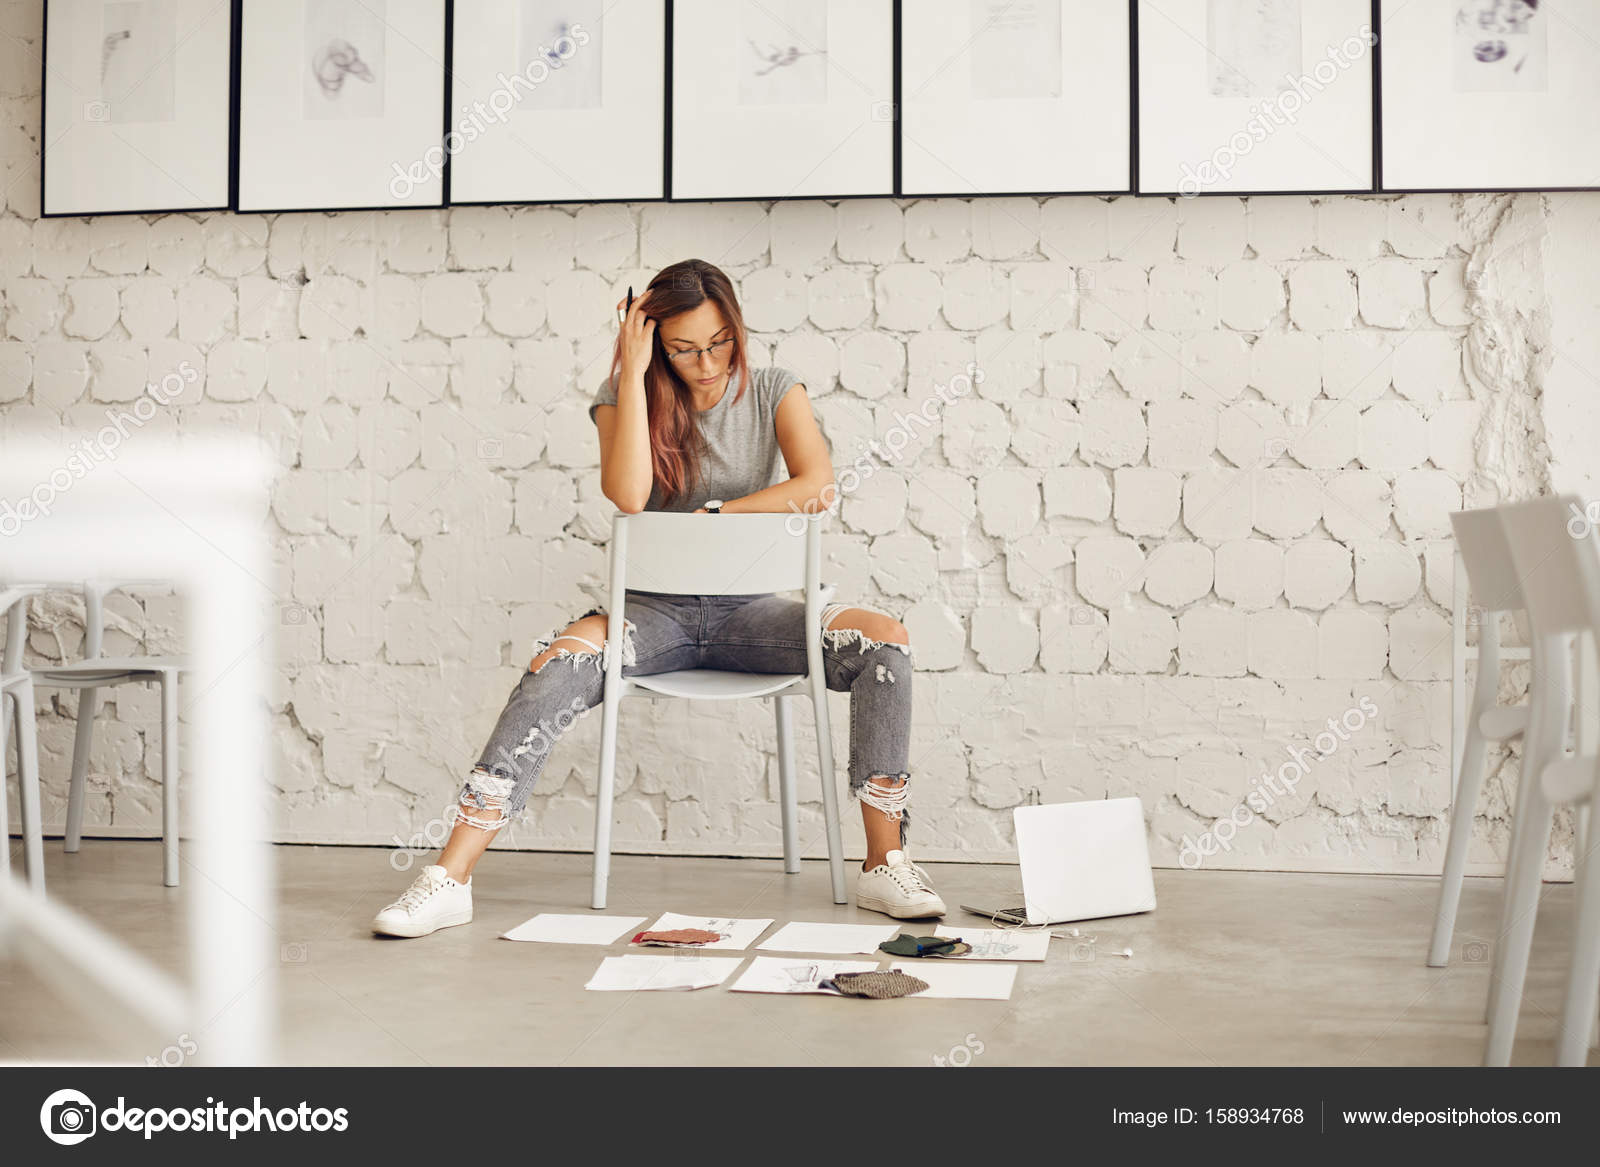 Aspiring Fashion Designer Thinking Of Textile And Sketches Scattered On Concrete Floor In Her New Studio Space Stock Photo C Ringsaroundme 158934768